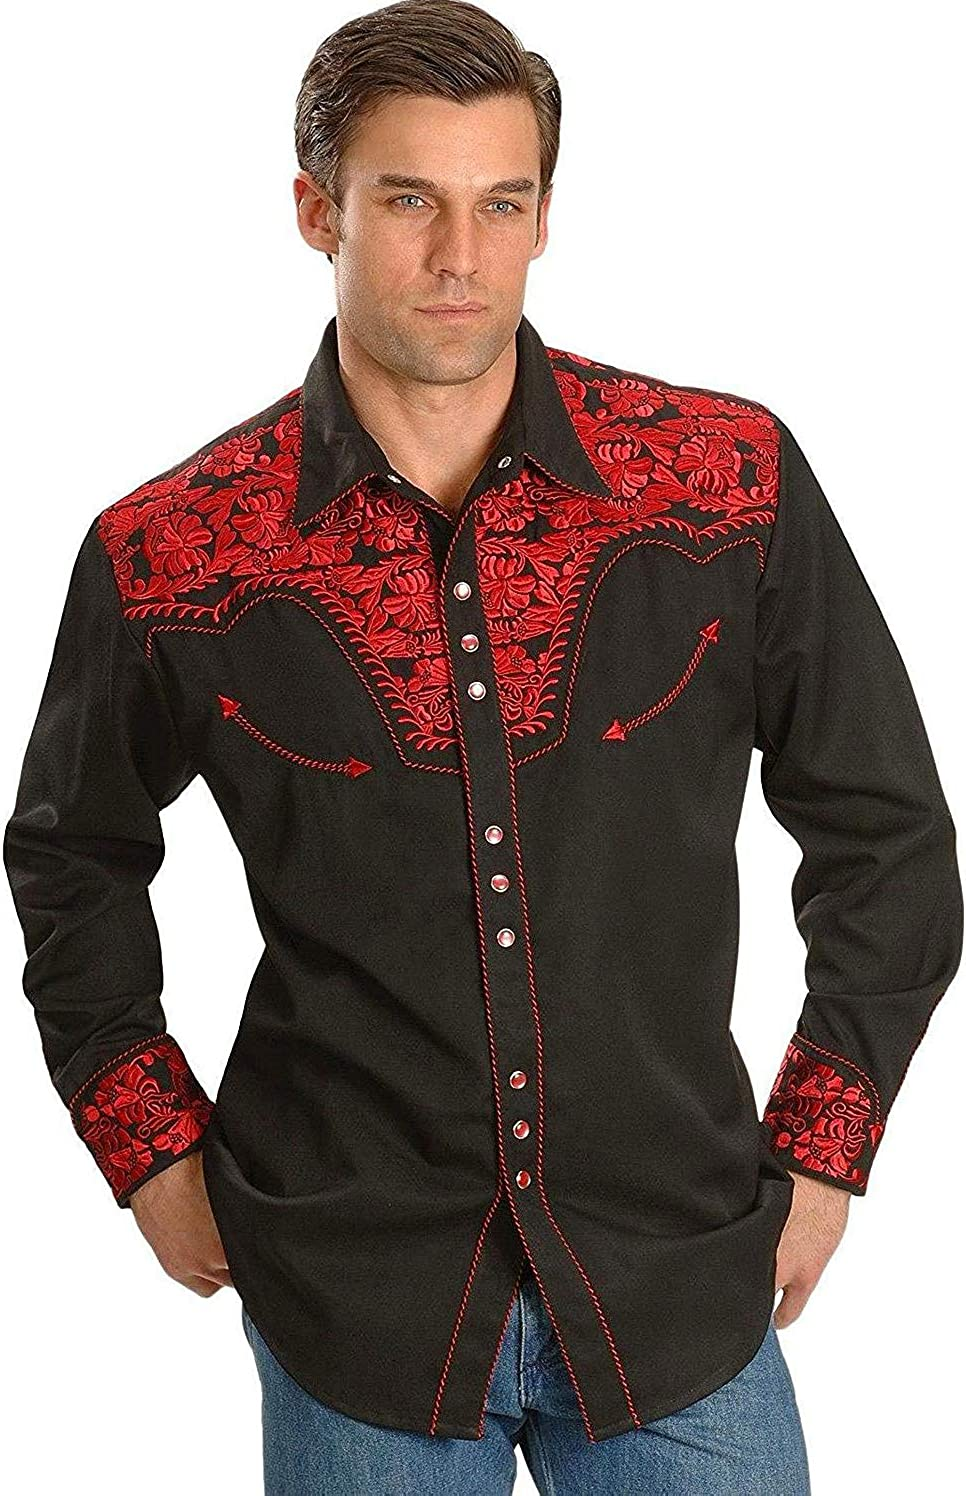 Scully Men's Crimson Floral Embroidery Retro Western Shirt Big and Tall - P-634Cri_X